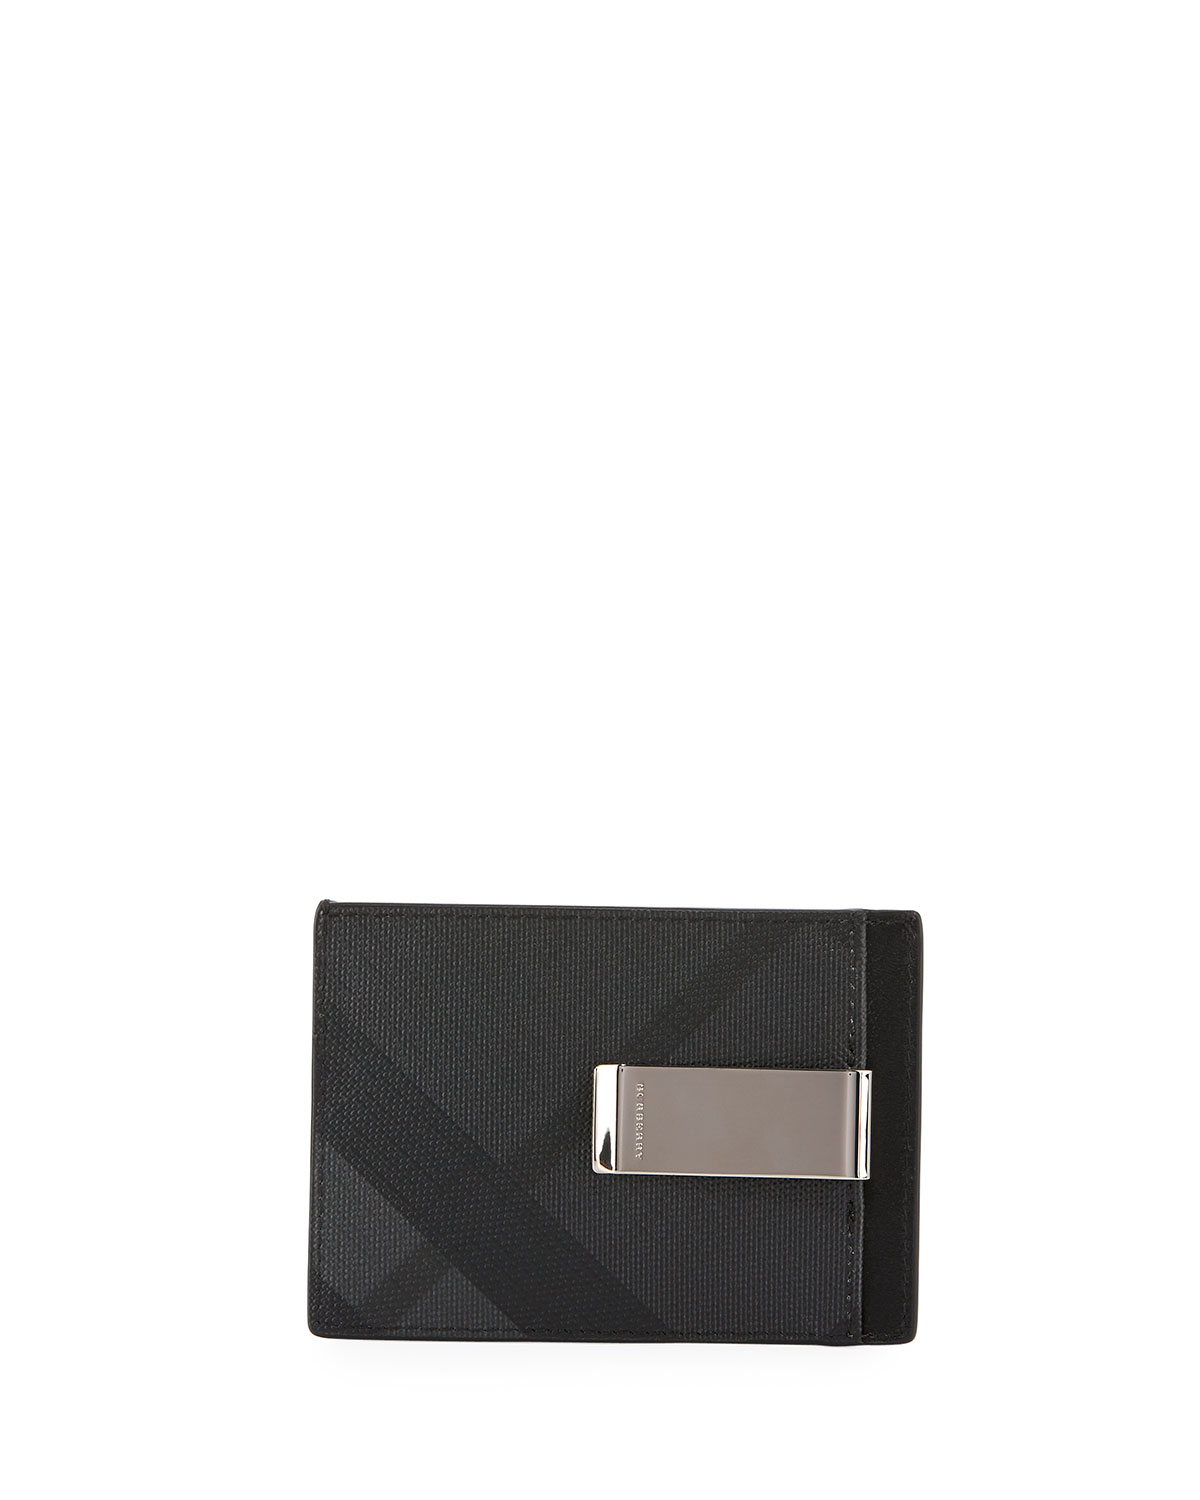 outlet store d4856 6c5f2 Chase Check Card Case with Money Clip